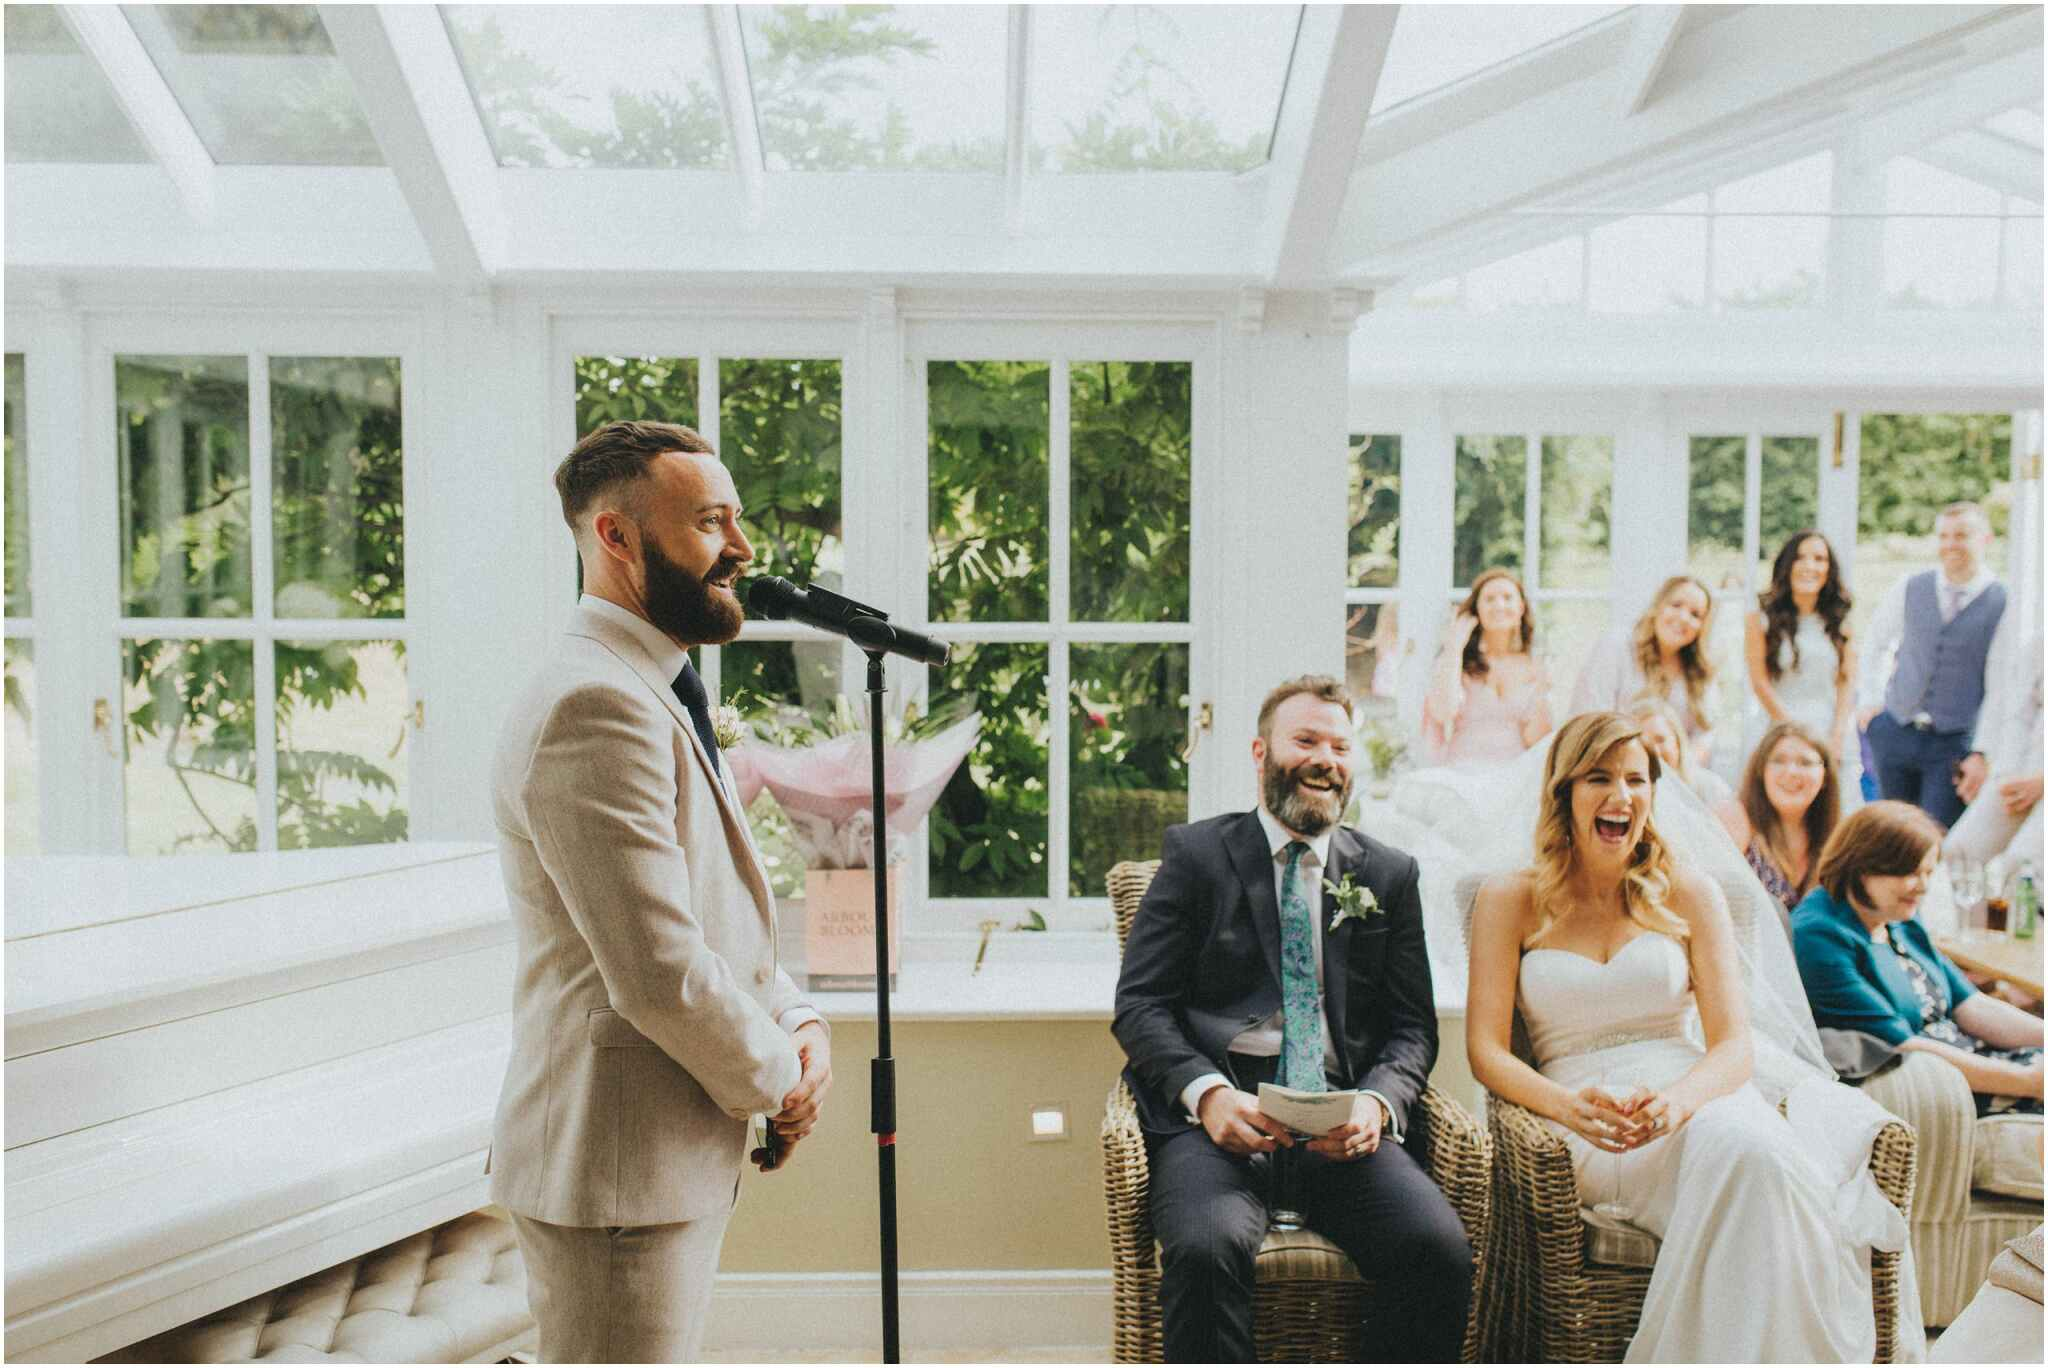 ballymagarvey village wedding 00114 - Fun and Relaxed wedding and elopement photography in Ireland, perfect for adventurous and outdoorsy couples